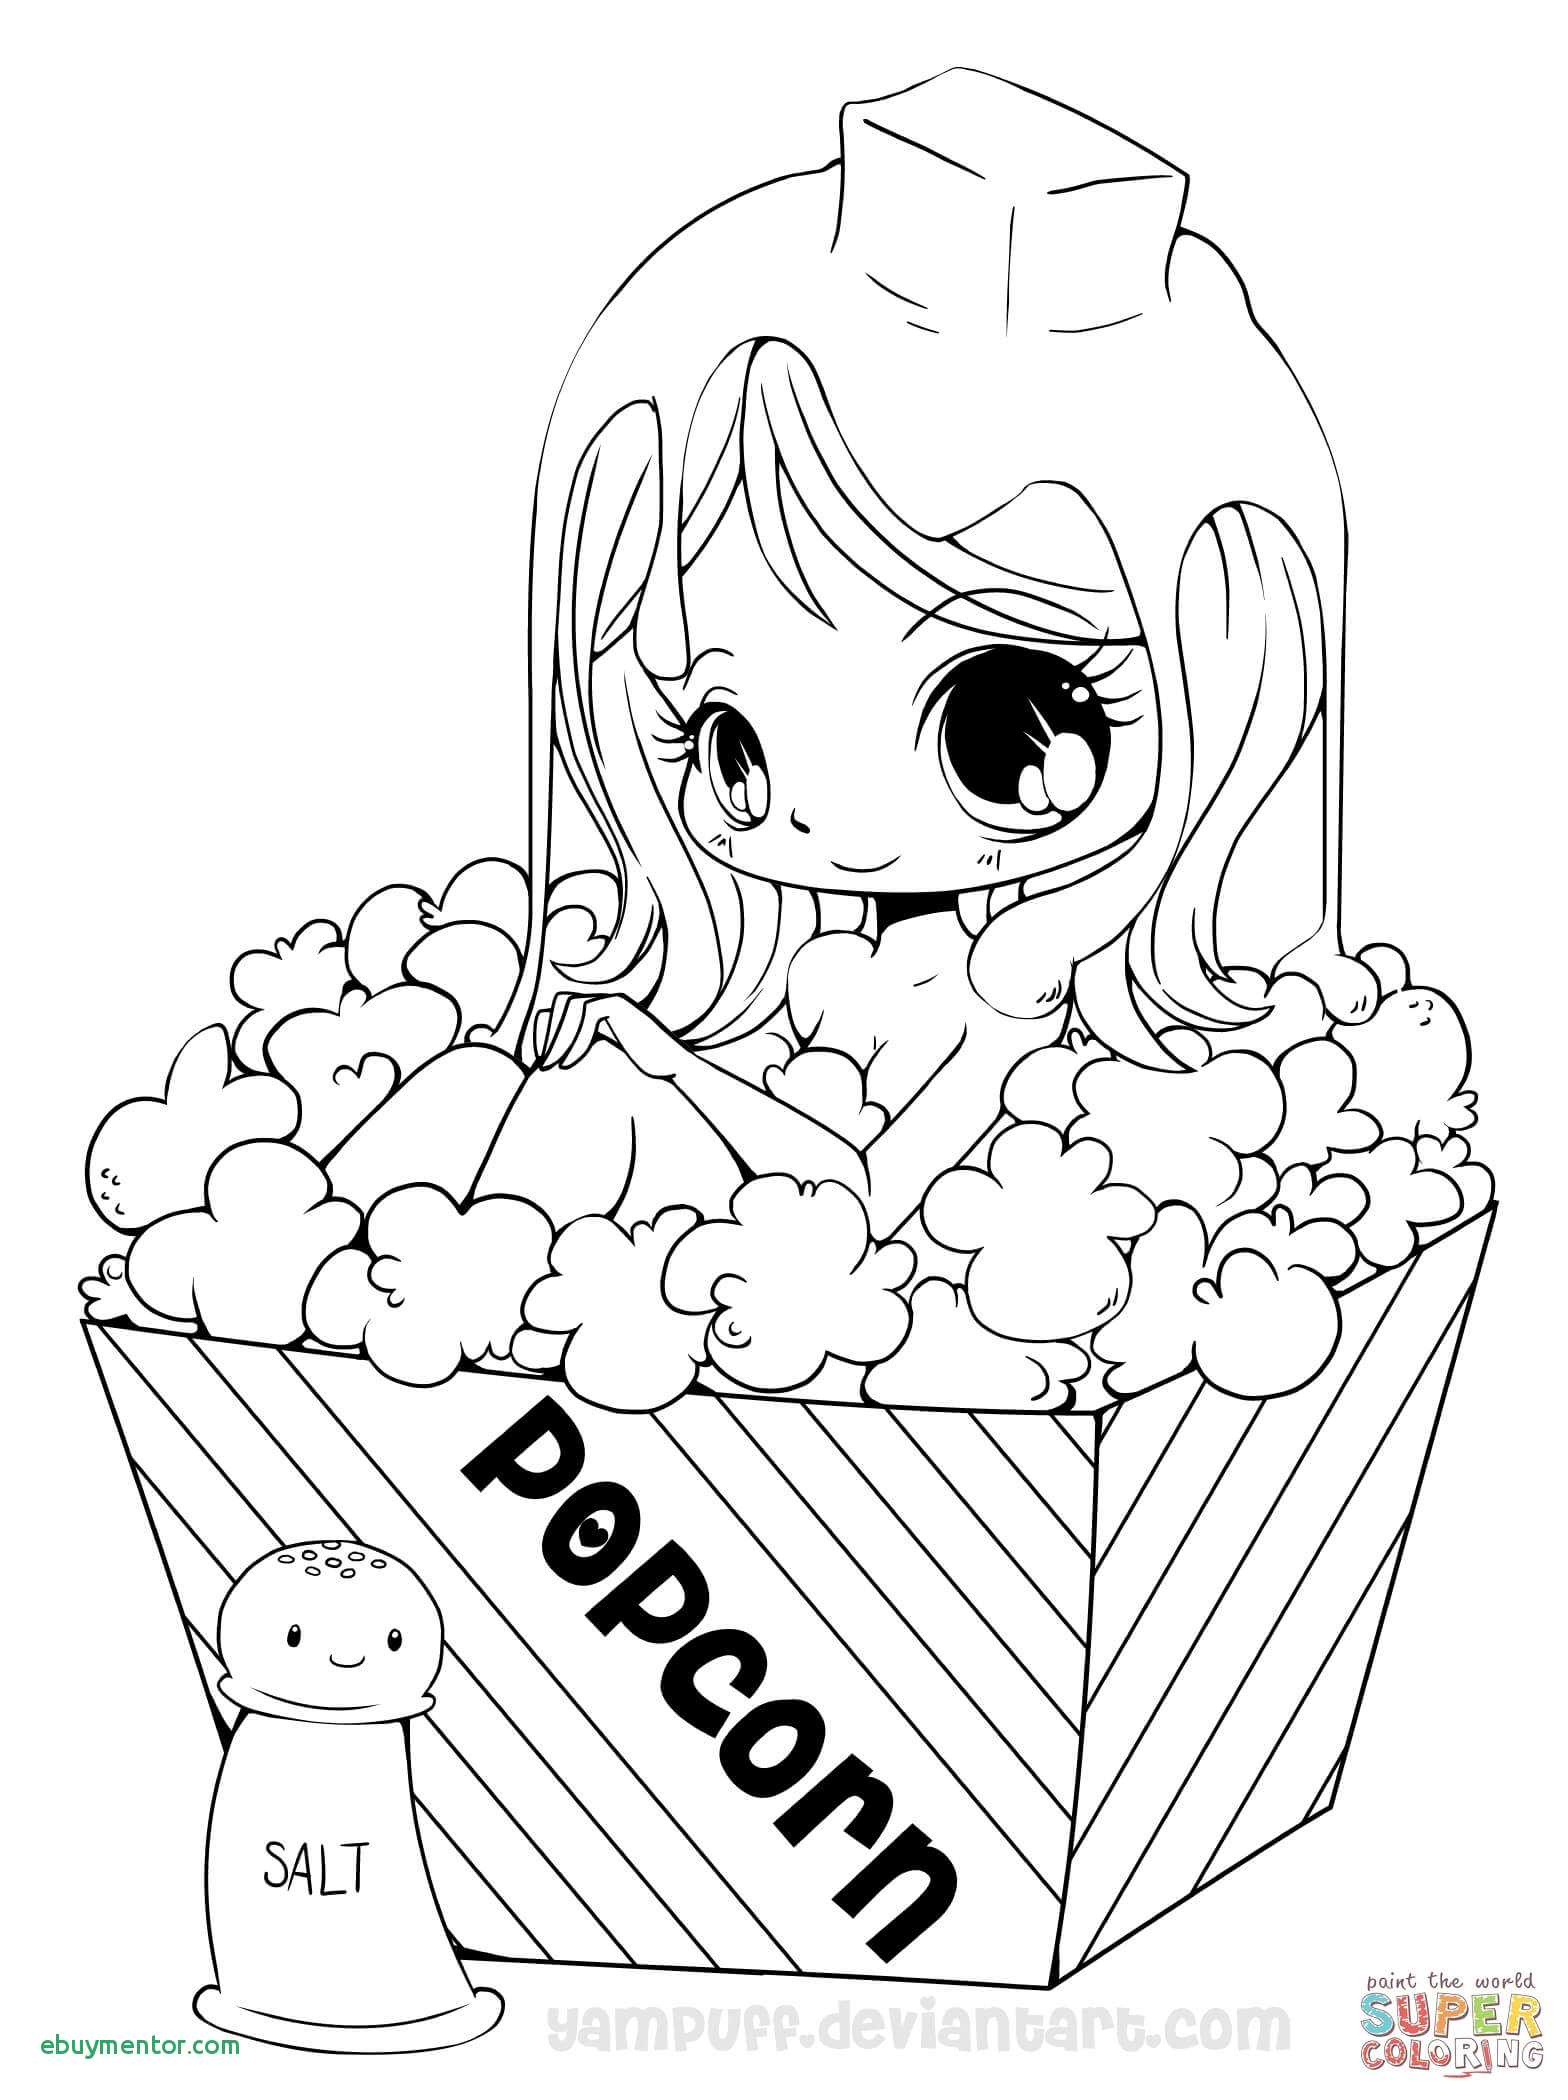 cute anime coloring pages Collection-Anime Girl Coloring Pages Witch Coloring Page Inspirational Crayola Pages 0d Coloring Page 2-r